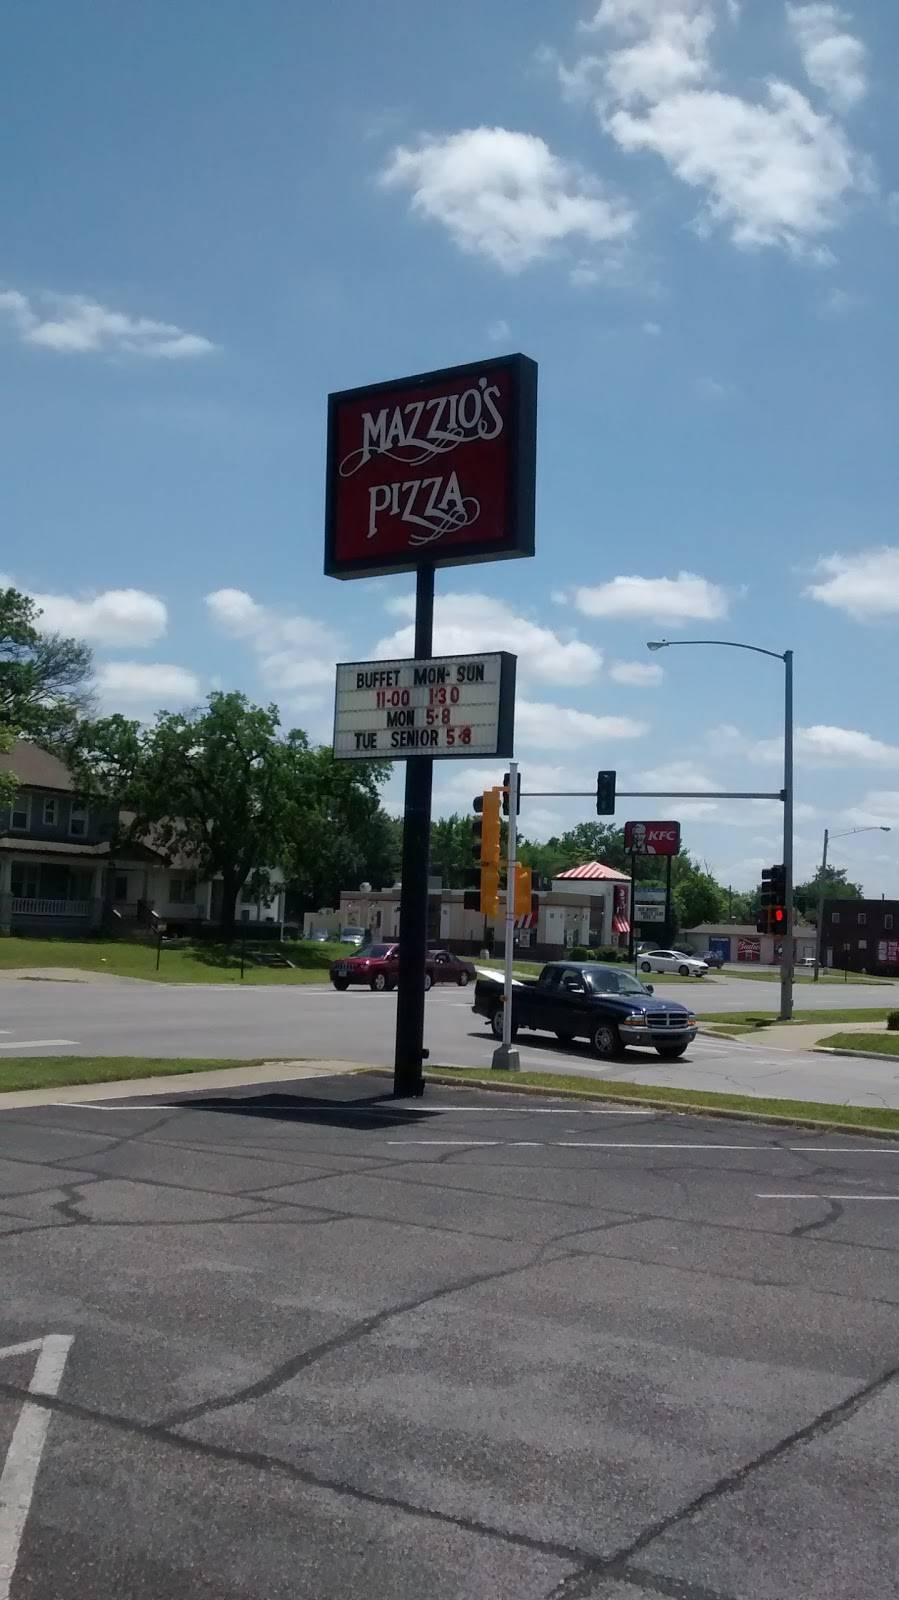 Mazzios Italian Eatery | meal delivery | 818 S Broadway St, Pittsburg, KS 66762, USA | 6202323535 OR +1 620-232-3535